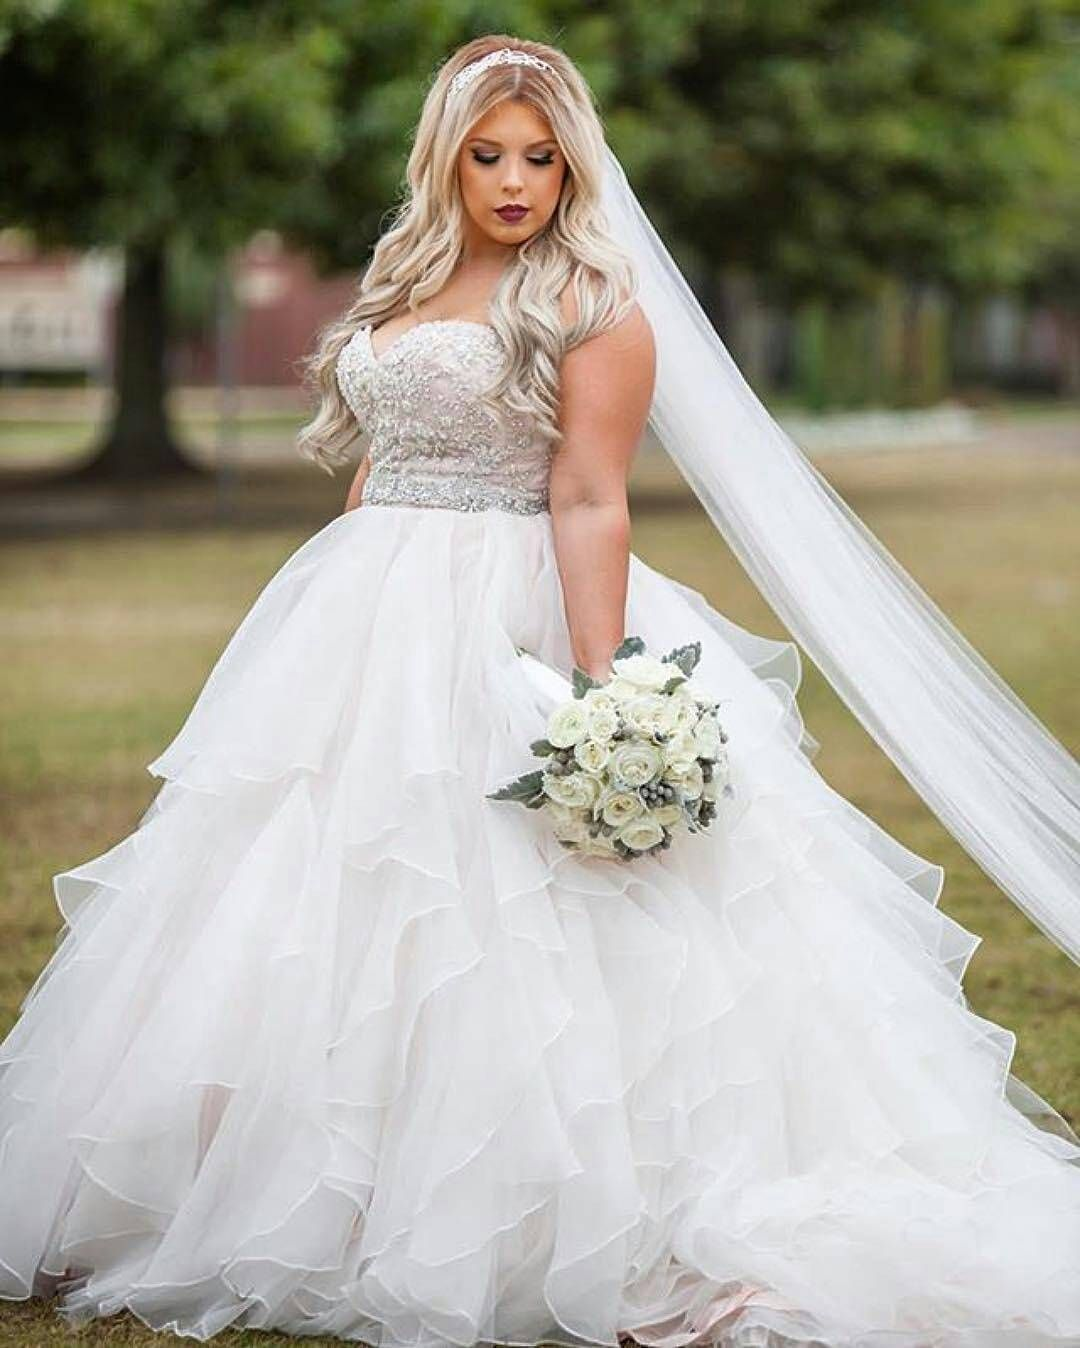 18 Romantic And Eye-catching Plus Size Wedding Dresses